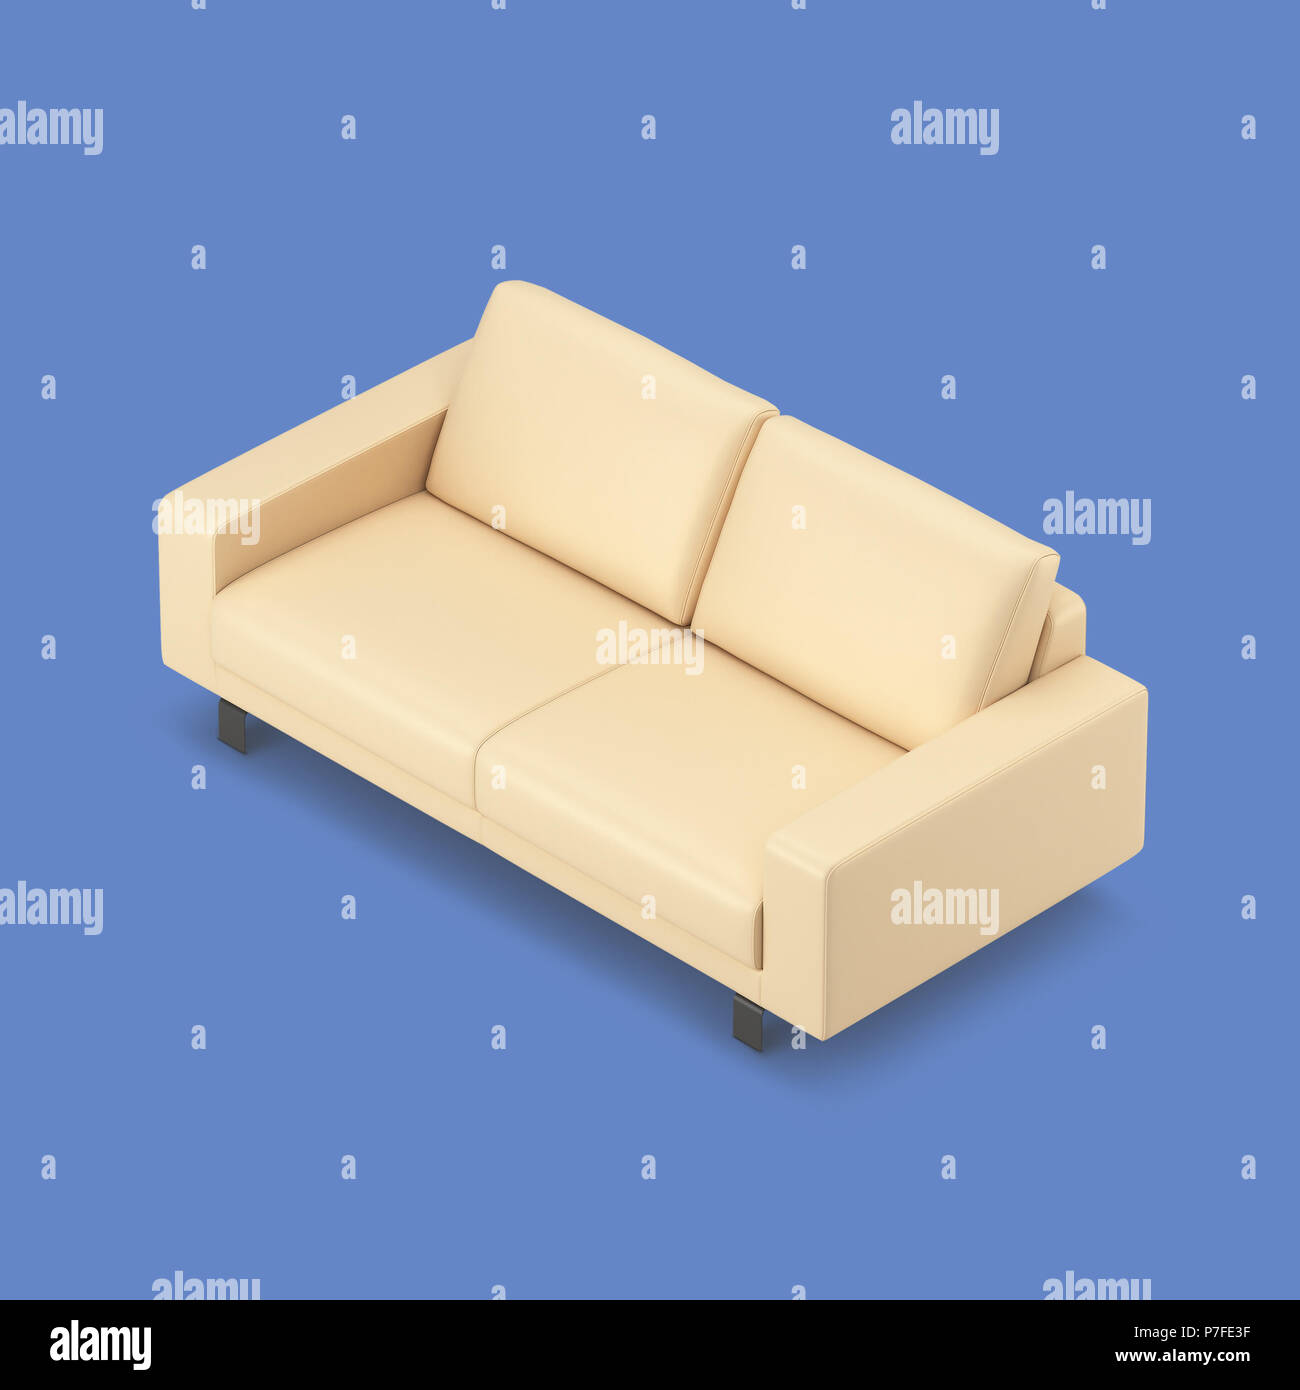 3D OBJECT 032 - Stock Image